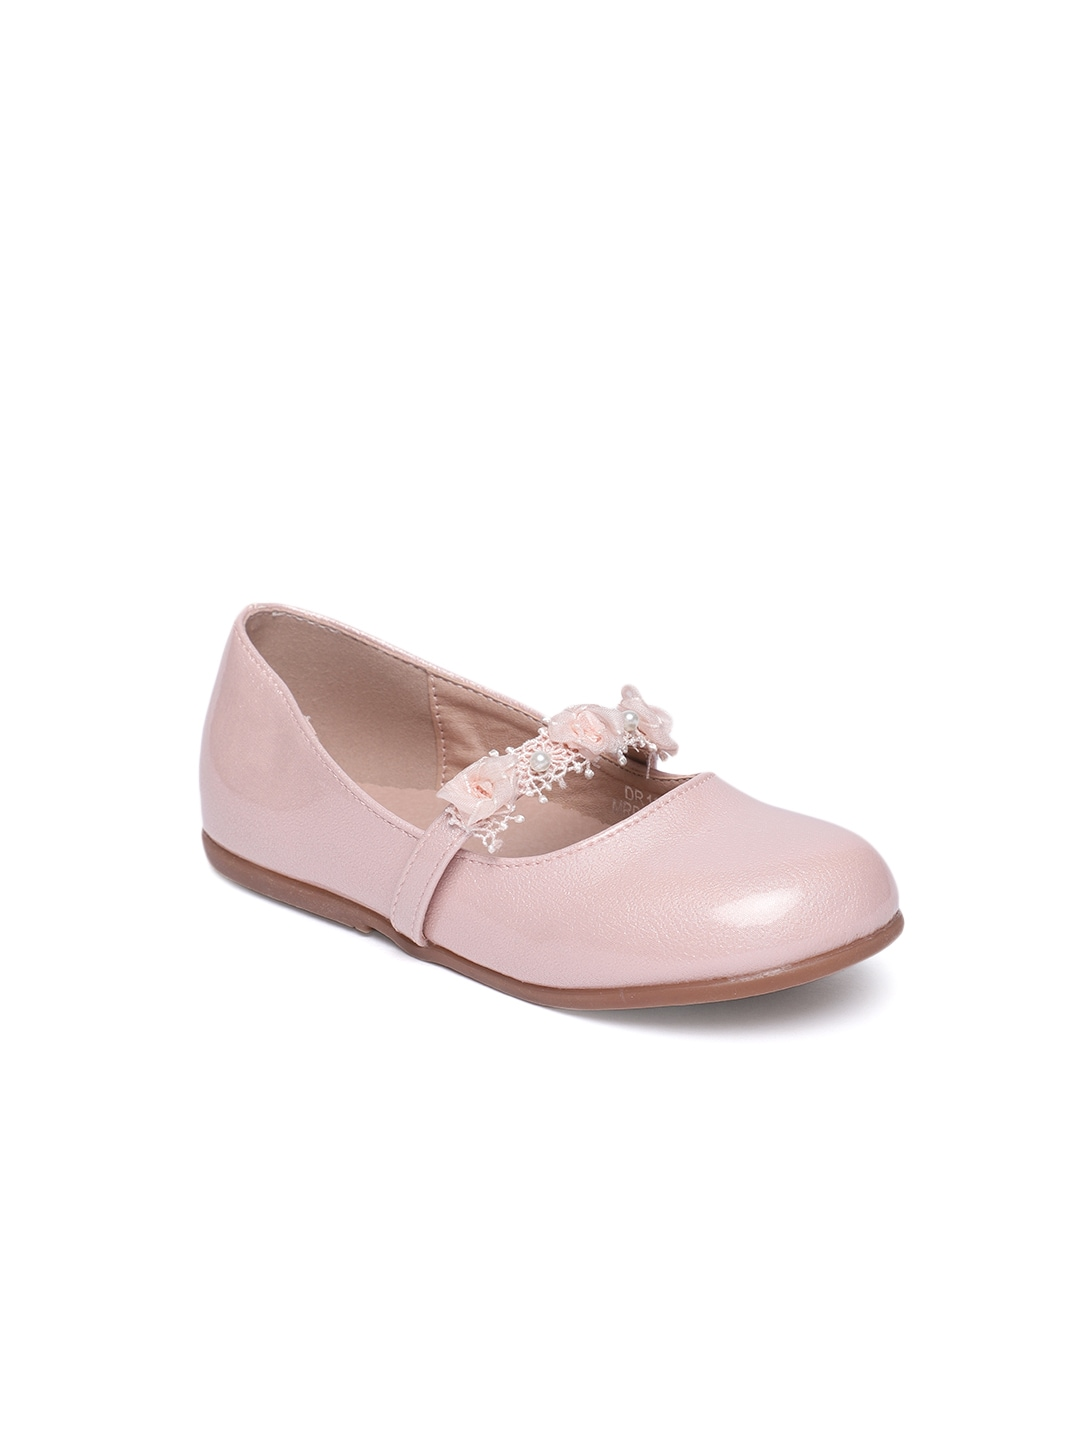 2a95830bcbfe7 Girl s Flats - Buy Cute Flats for Girls Online